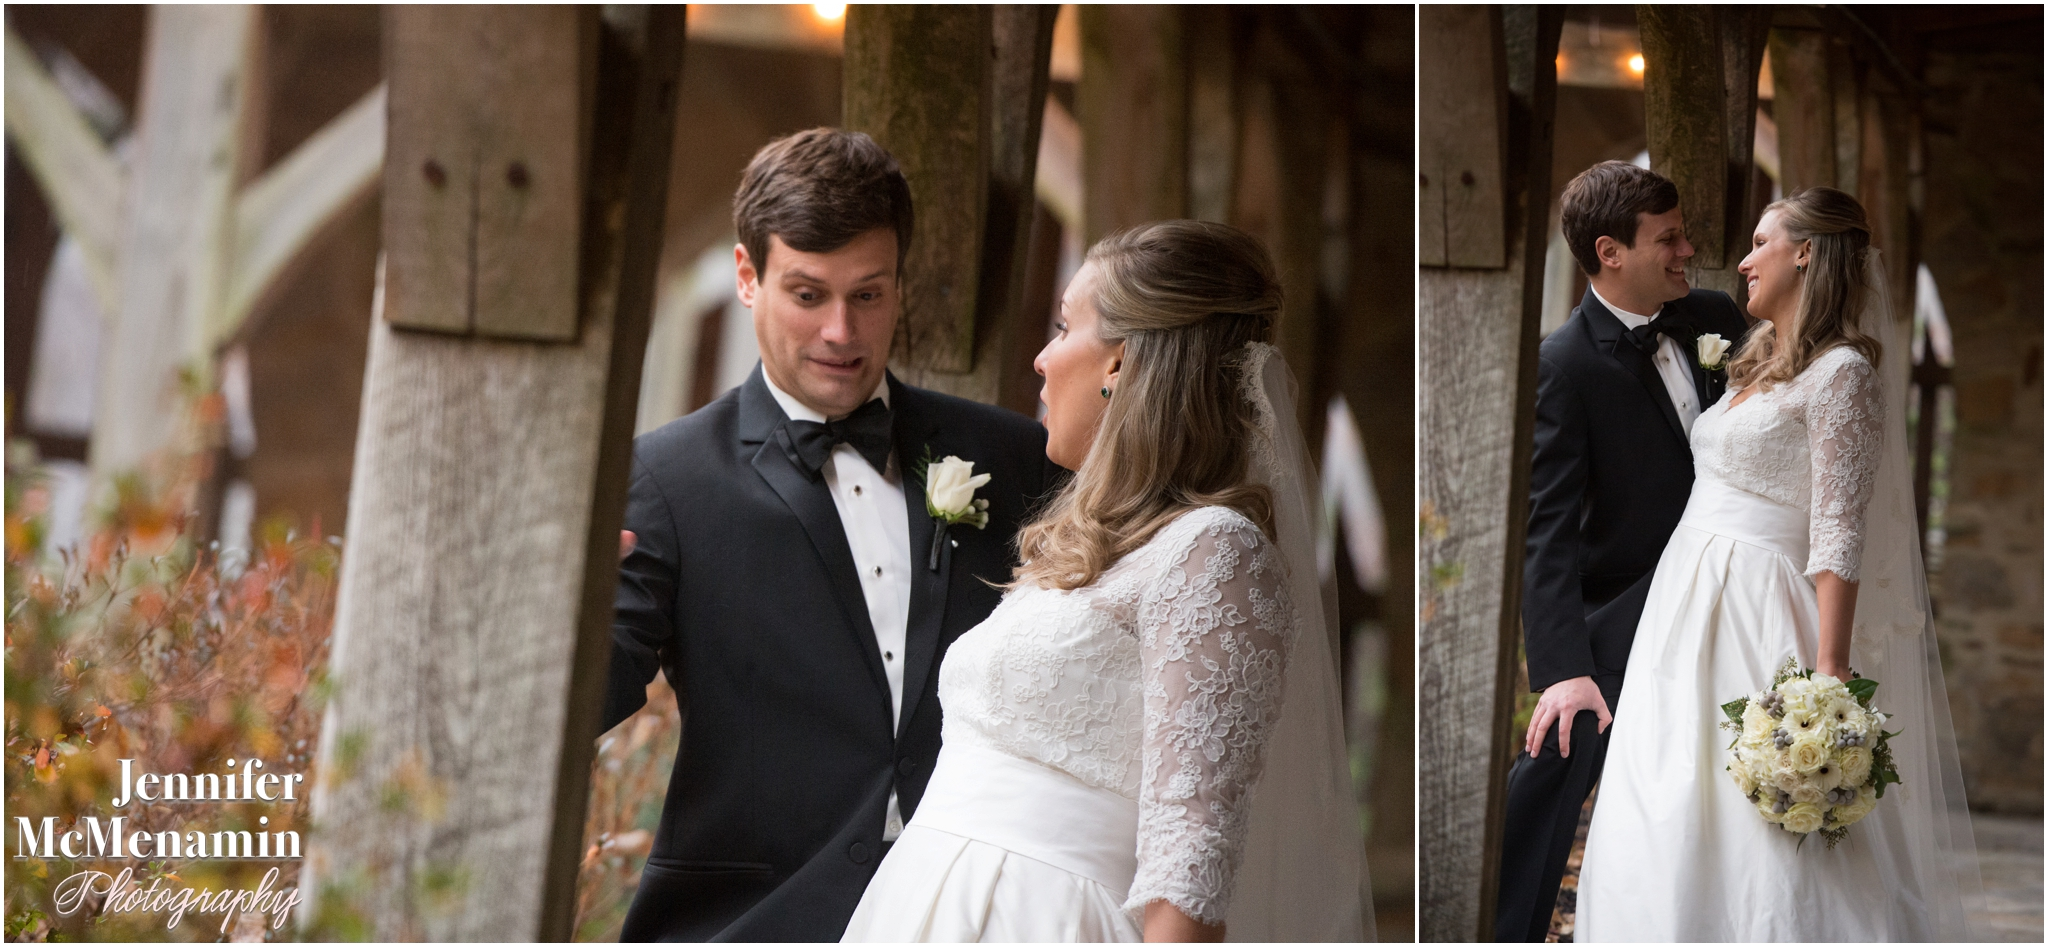 0074_RyanClemmens_02065-0564_JenniferMcMenaminPhotography_Immaculate-Conception-Church_The-Cloisters_Baltimore-wedding-photography_Baltimore-wedding-photographer